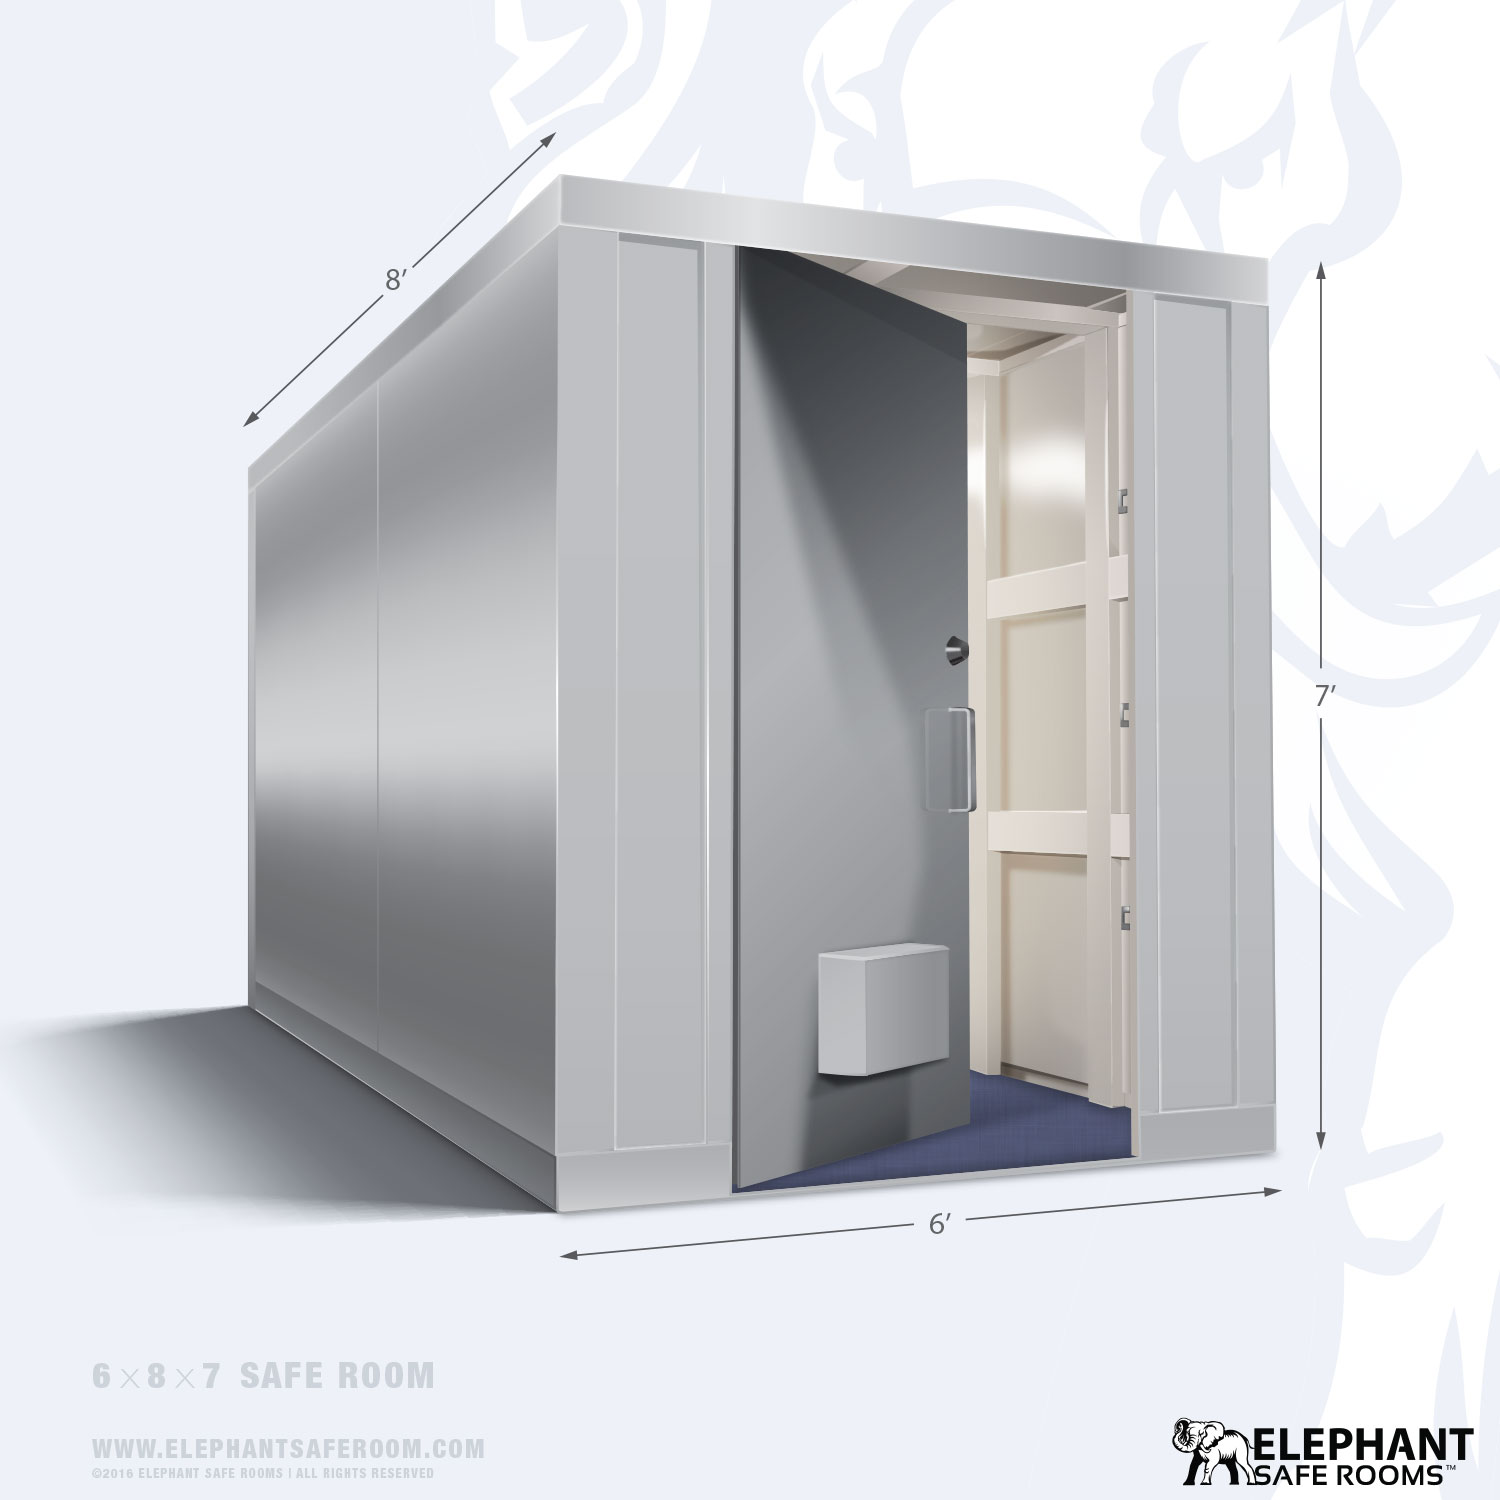 6 39 X 8 39 Safe Room Elephant Safe Room